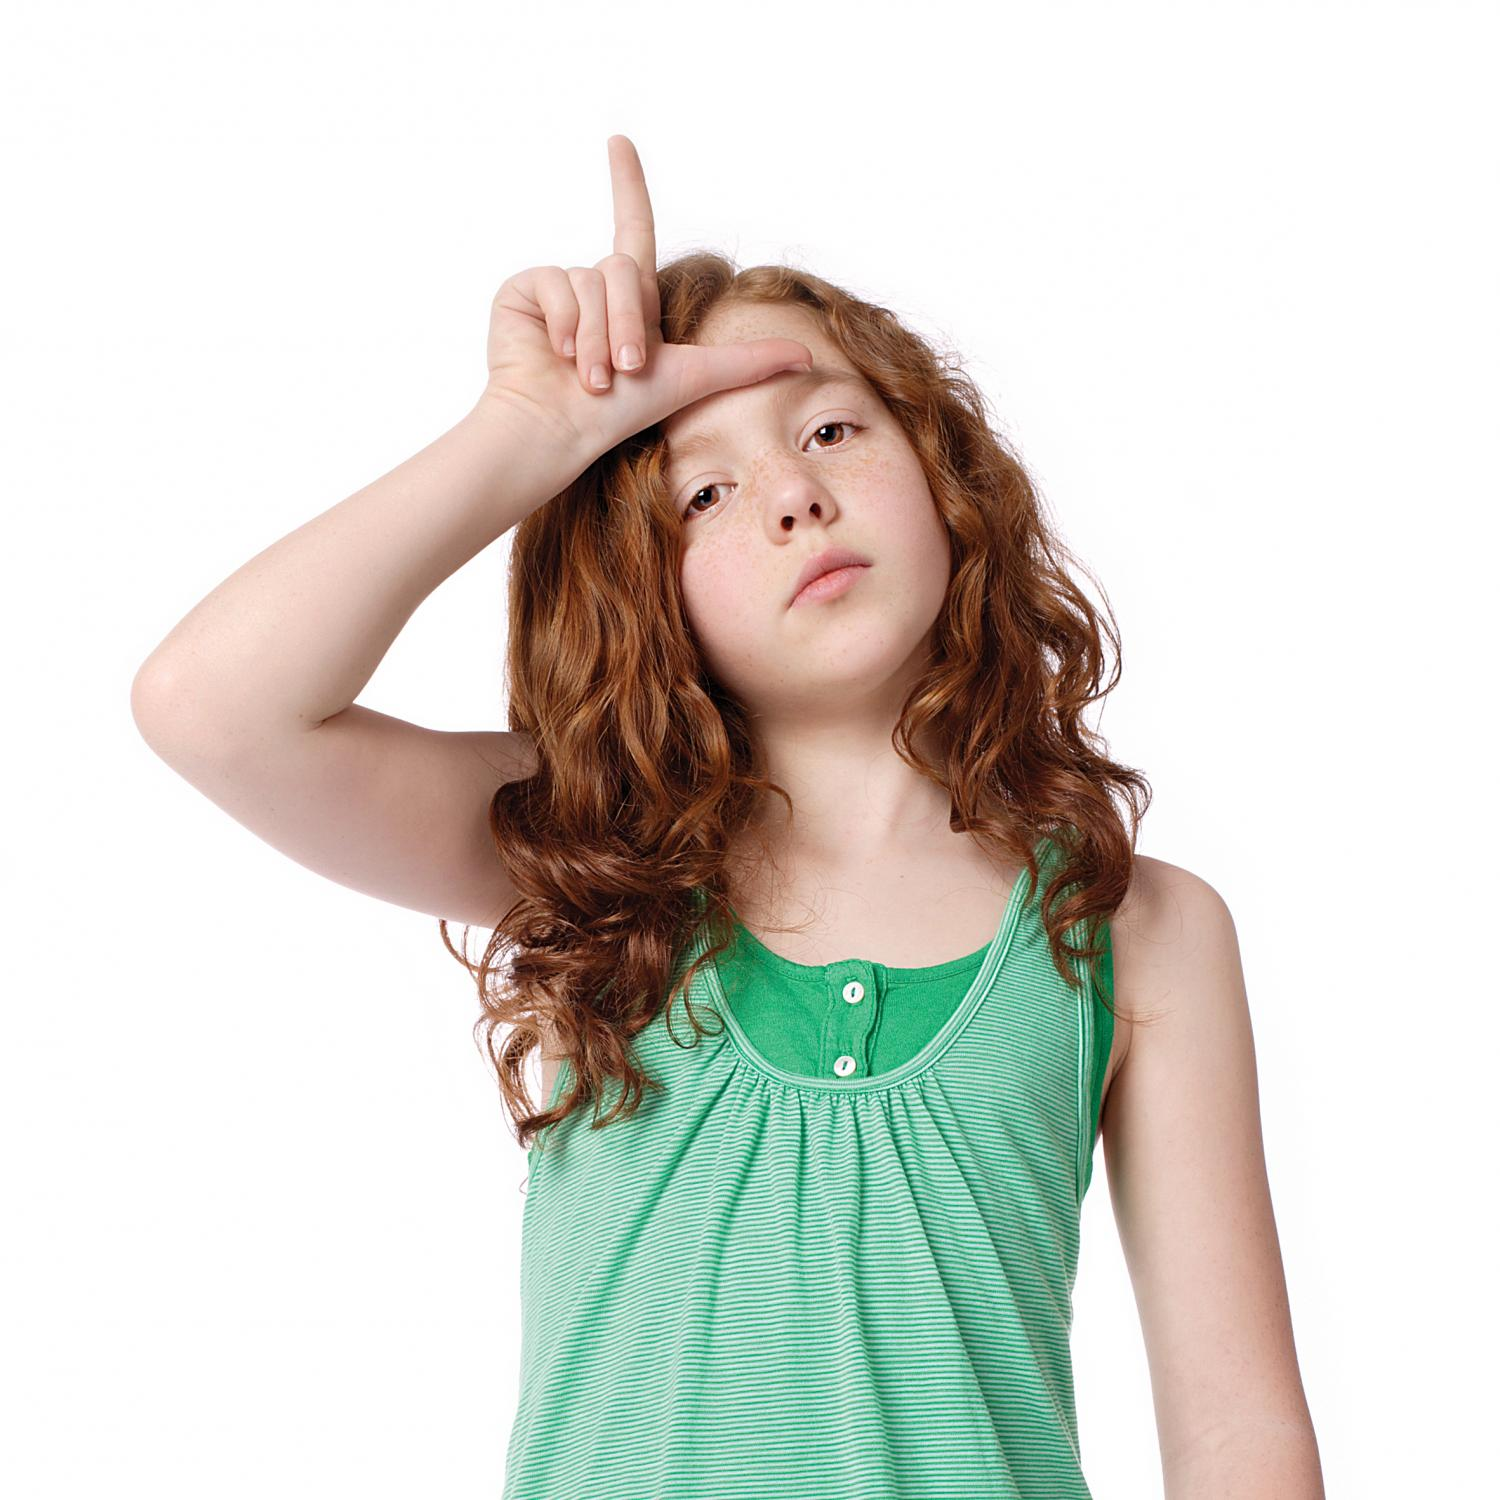 Teenage child does not want to communicate - what to do